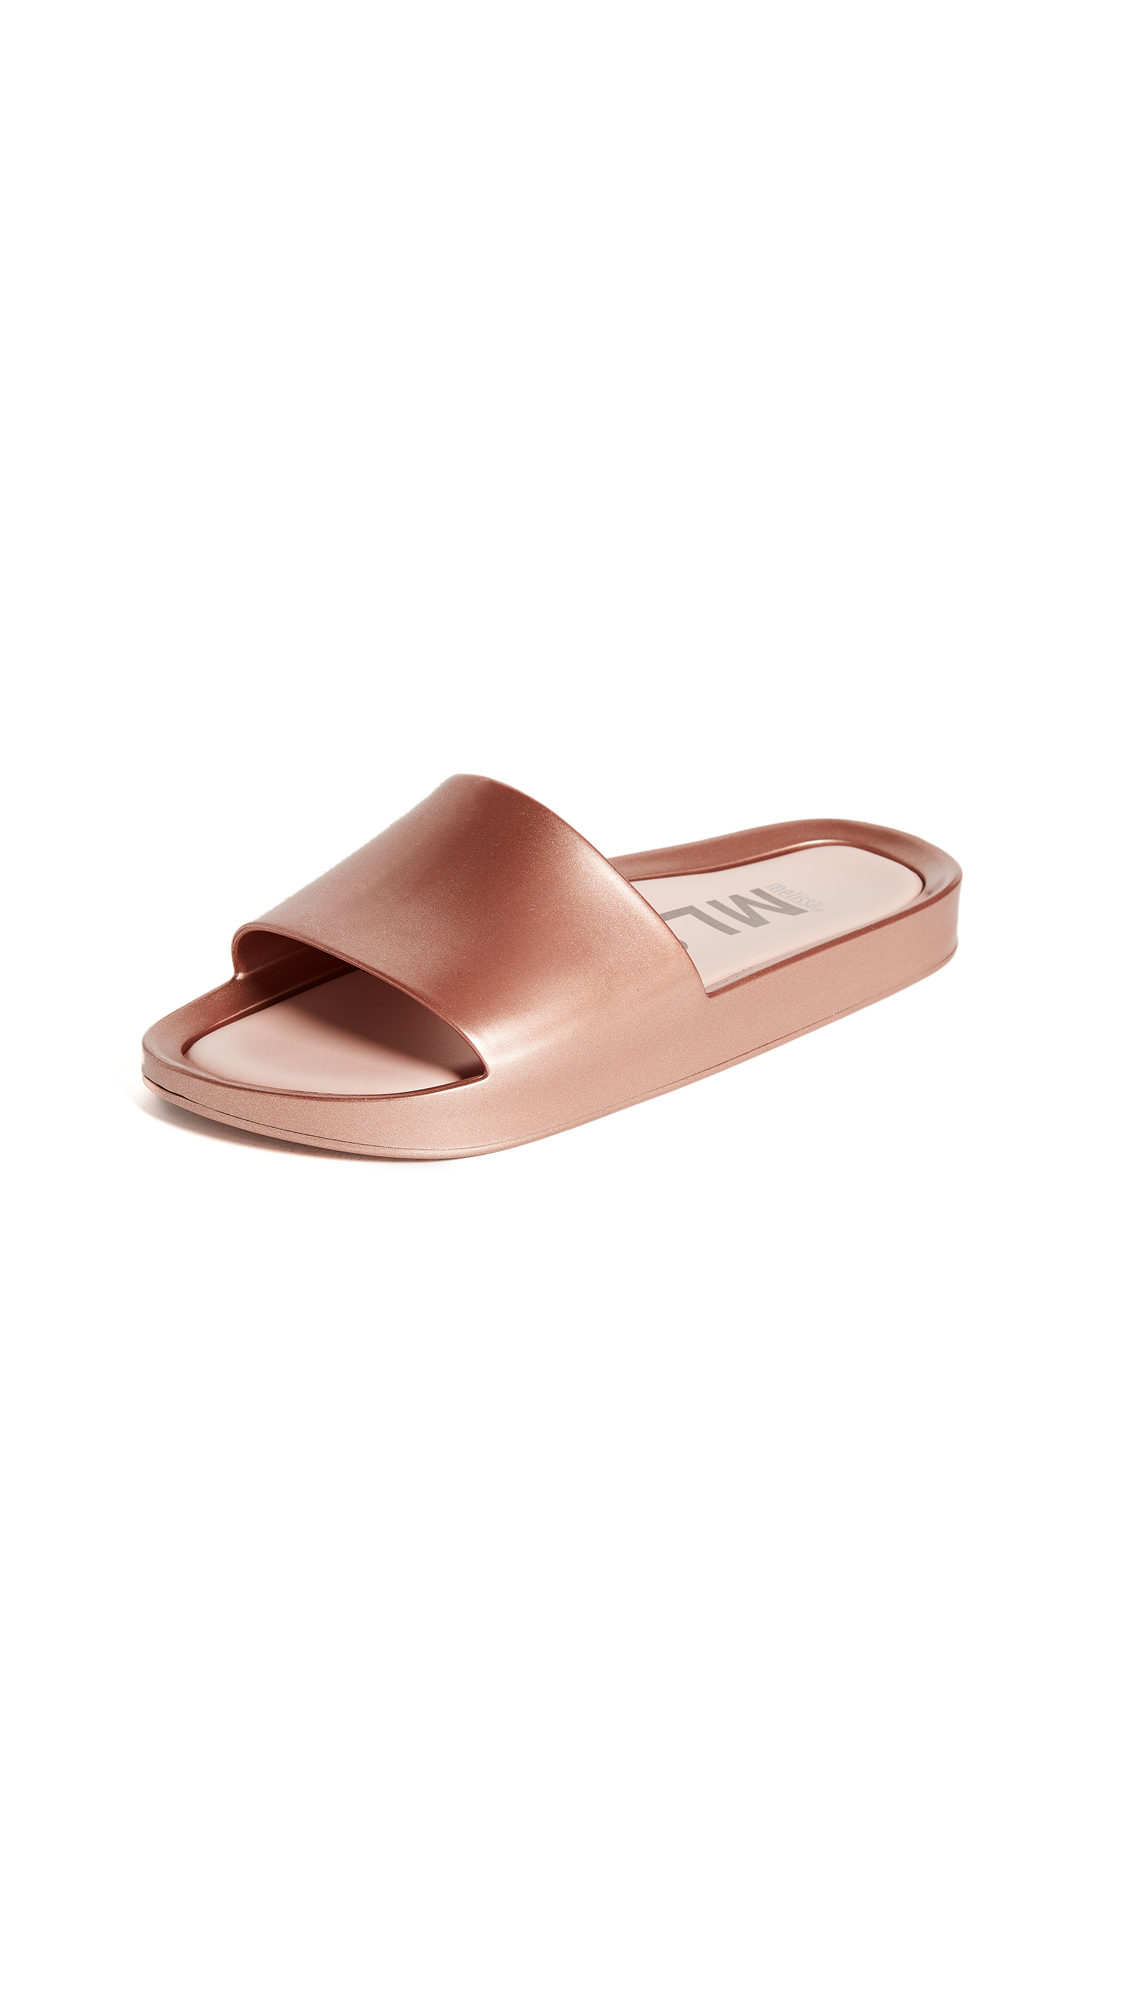 Melissa Beach Slide Shine Sandals - Rose Gold